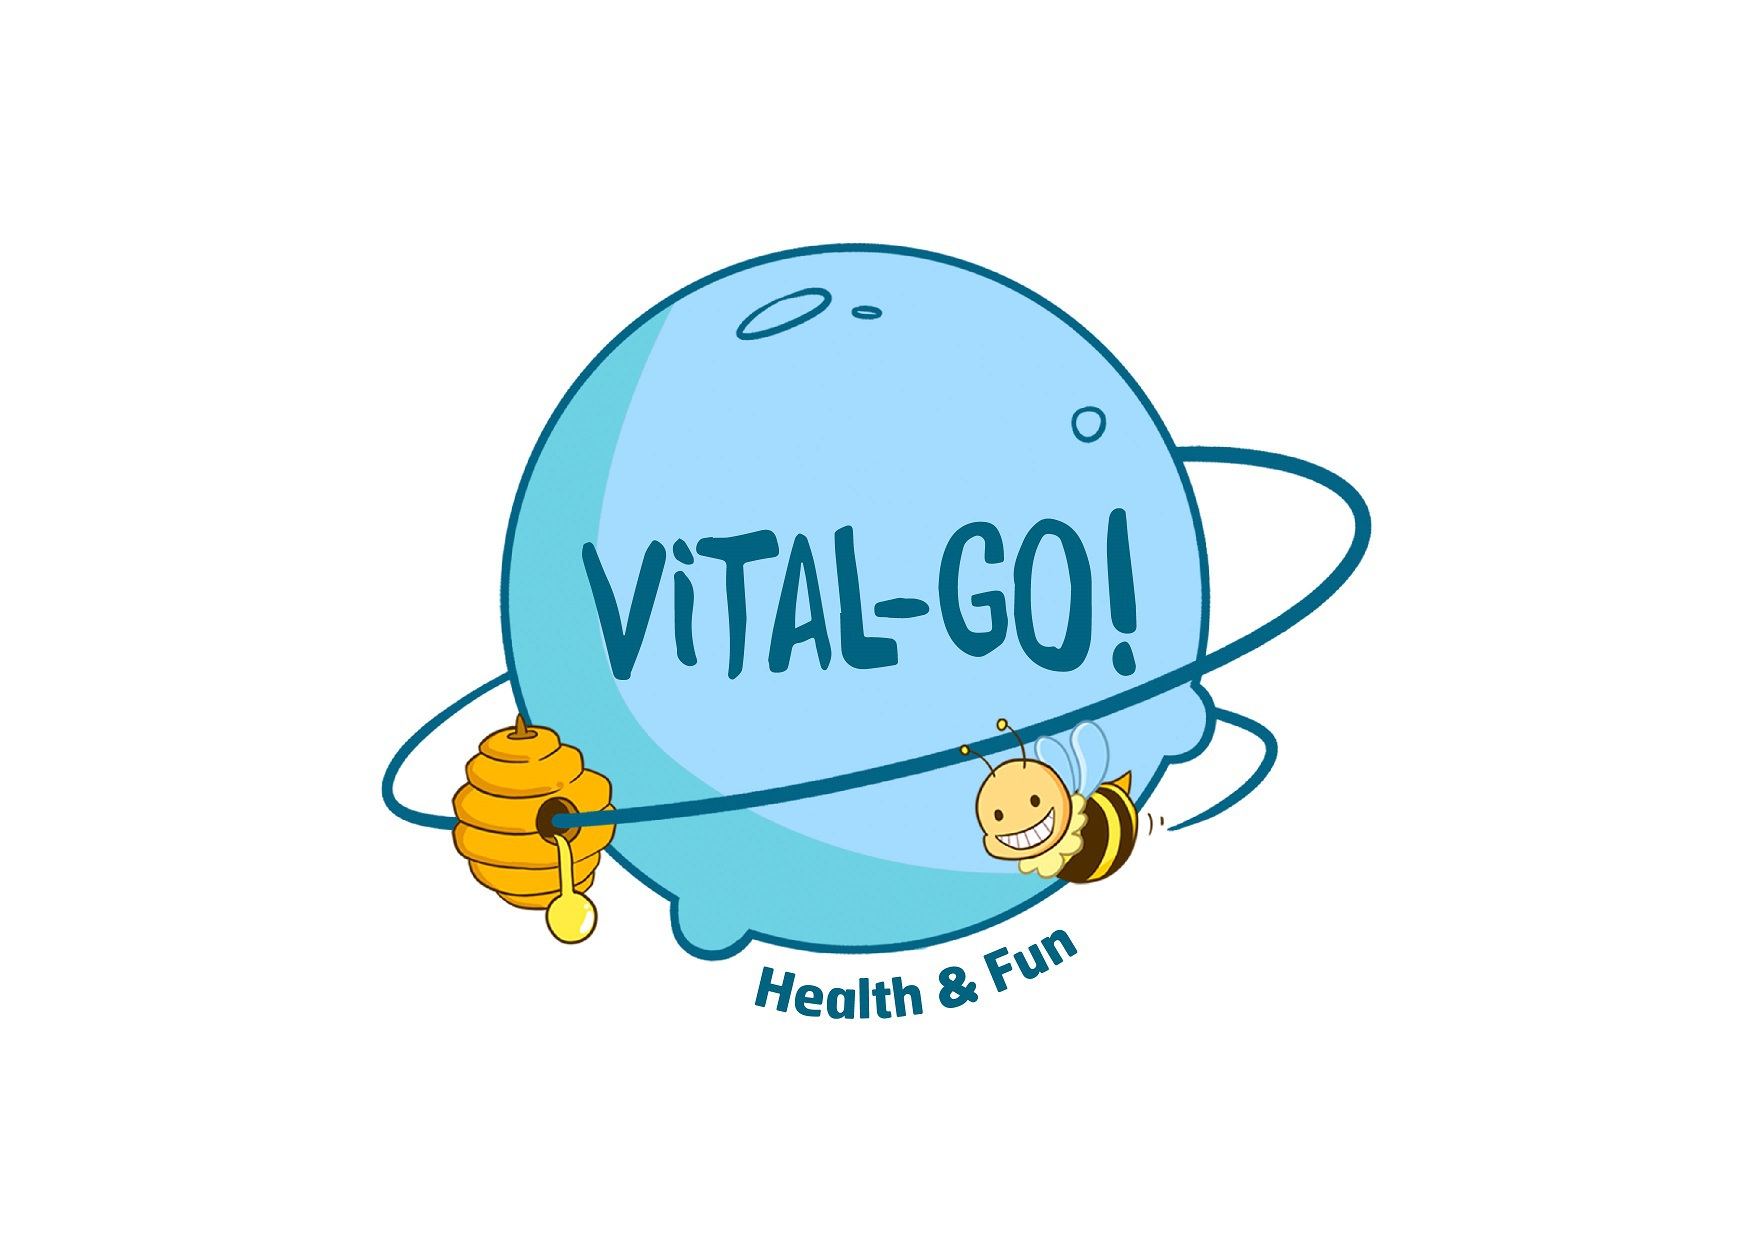 VITAL-GO HEALTH & FUN